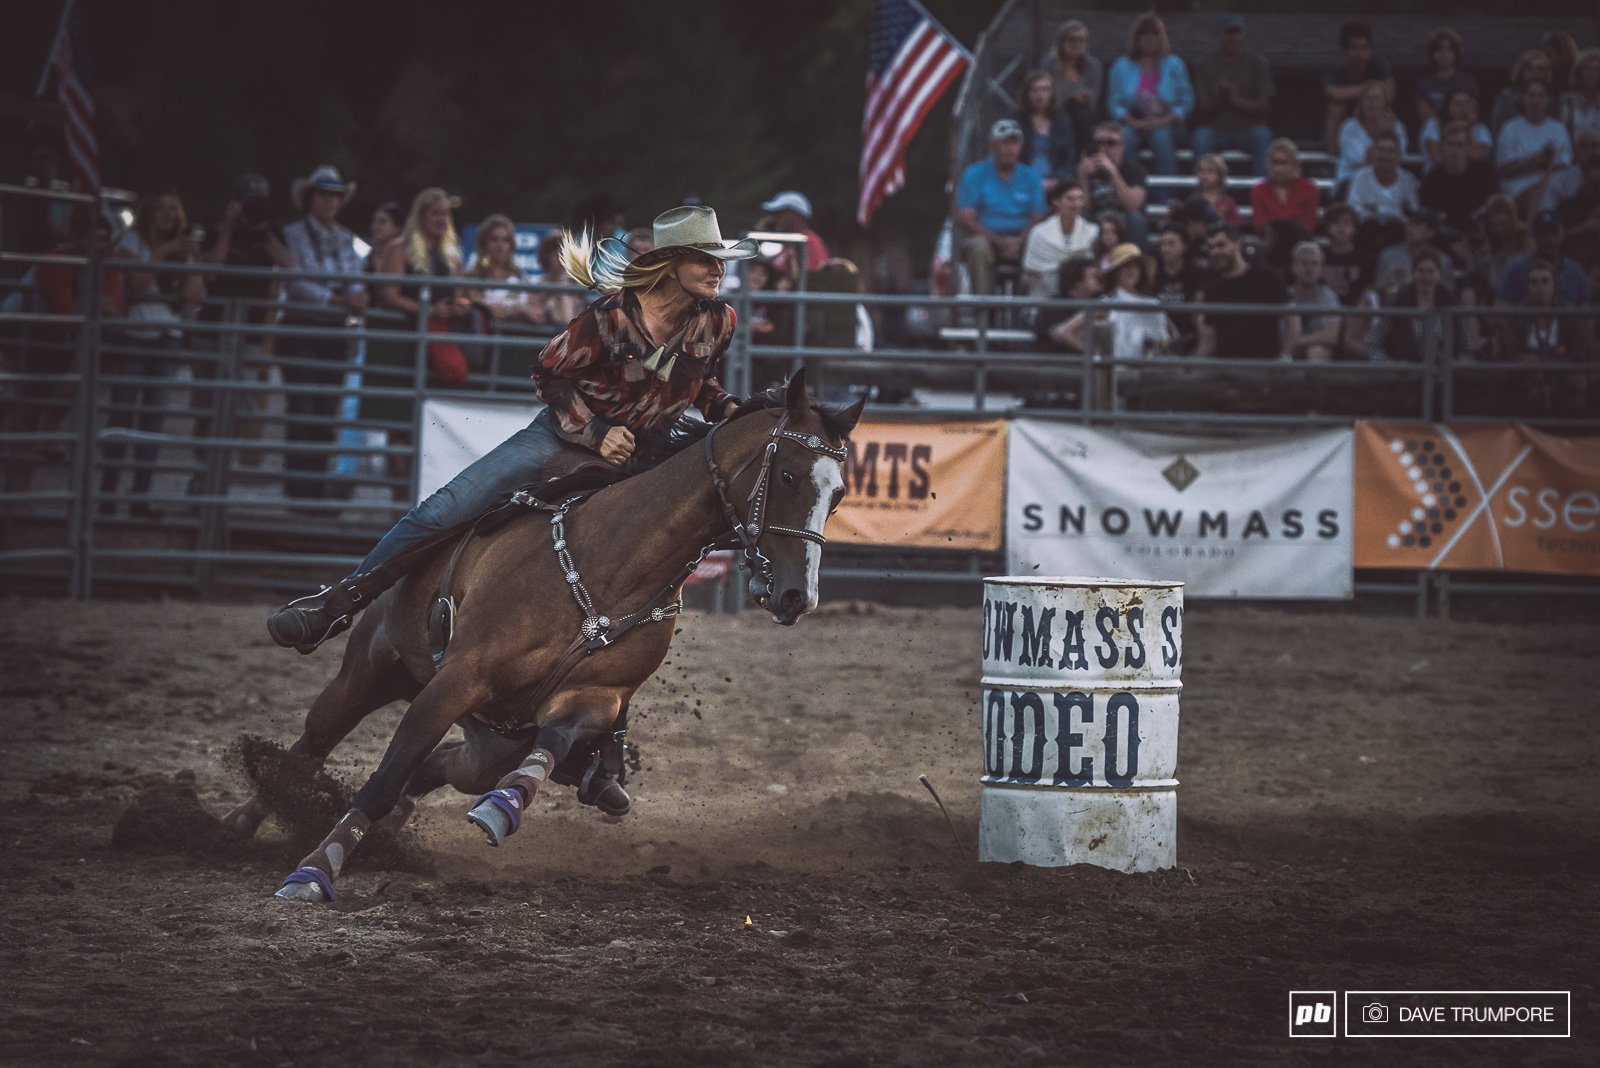 The Aspen Rodeo kicked off the week for racers on Wednesday night many of who had never seen such a spectacle in the flesh. Perhaps a few will be inspired by the horsepower on display Something they are going to need in spades this weekend.